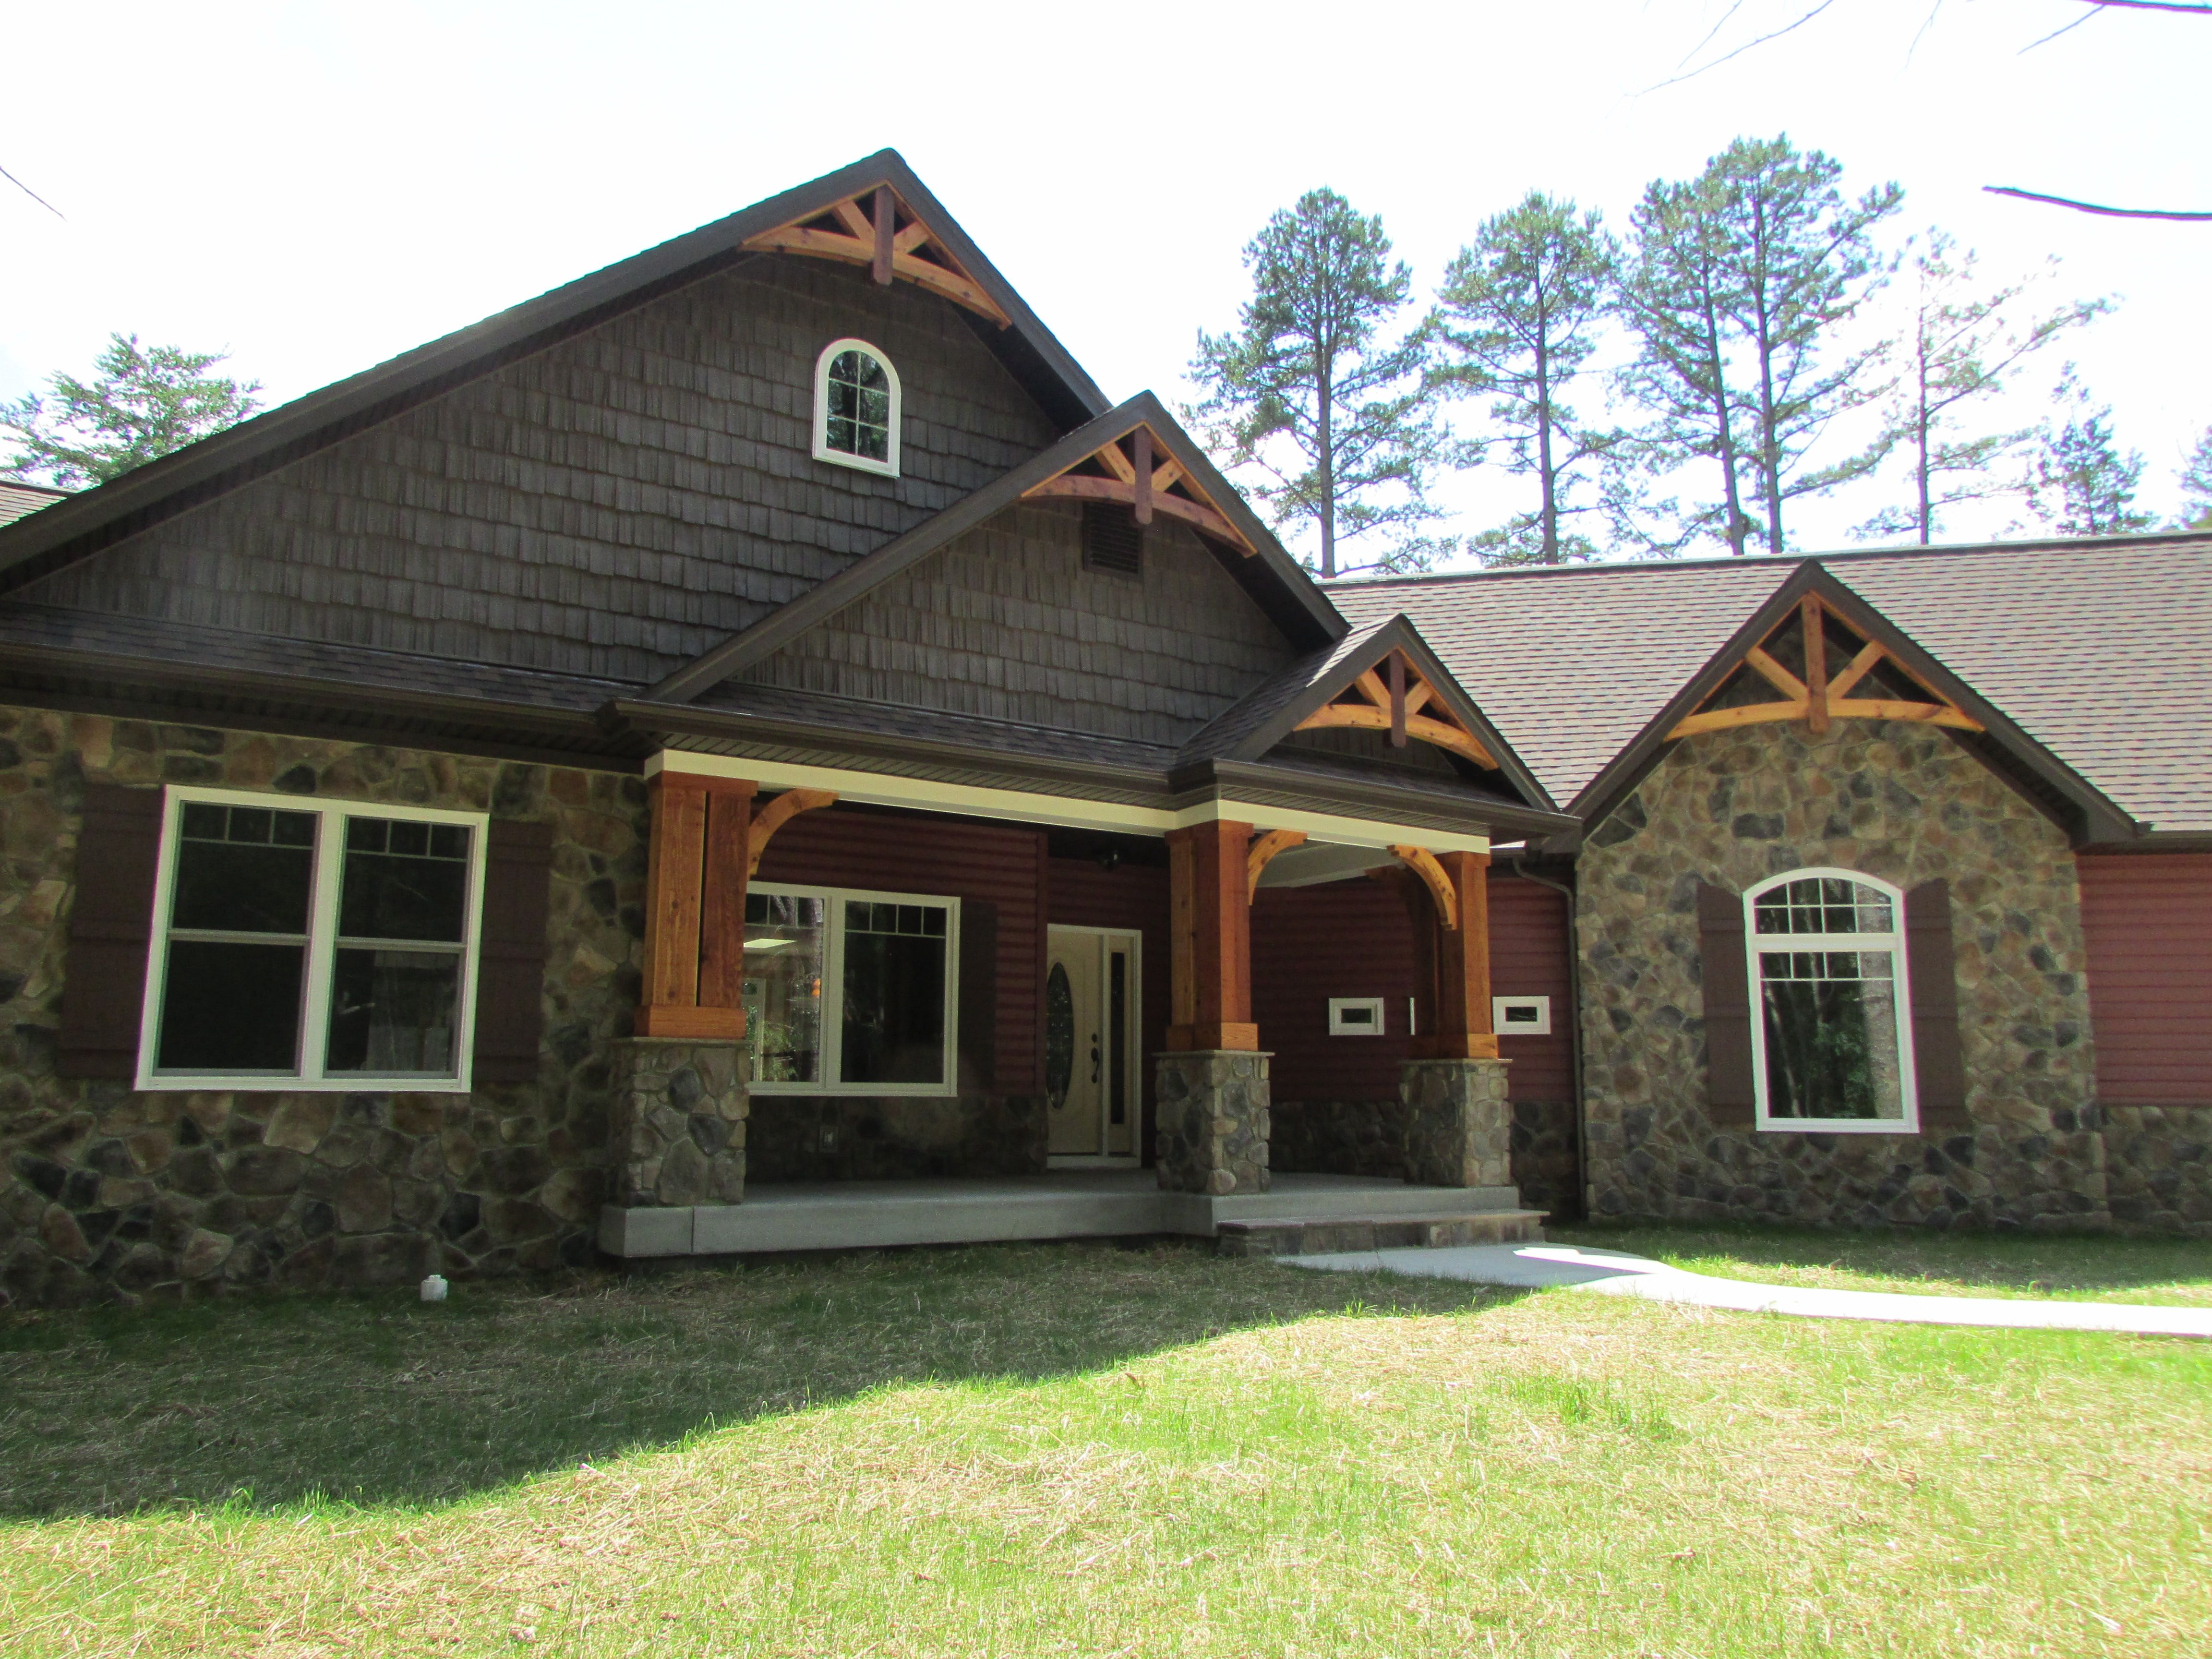 Gable And Shaker Detail Combined With Stone And Deep Red Siding Is The Picture Of A Rustic Cottage Home Ranch House Plans Rustic Exterior House Styles